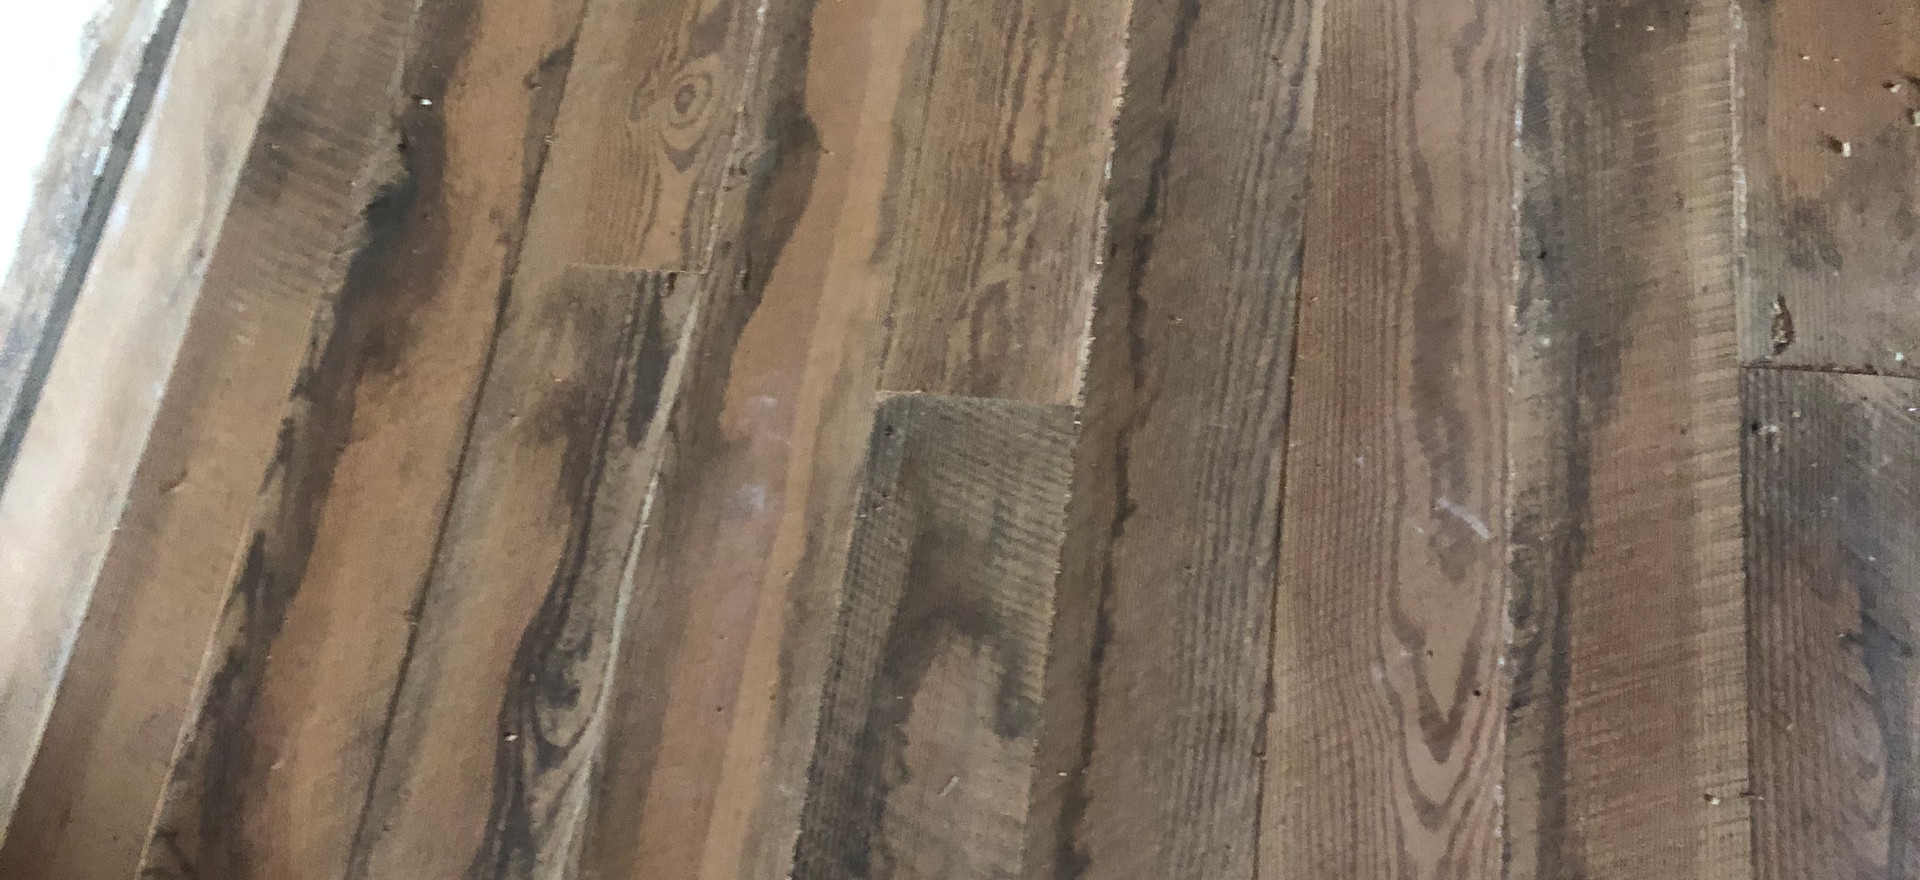 Cabin floor restoration, August 13, 2020